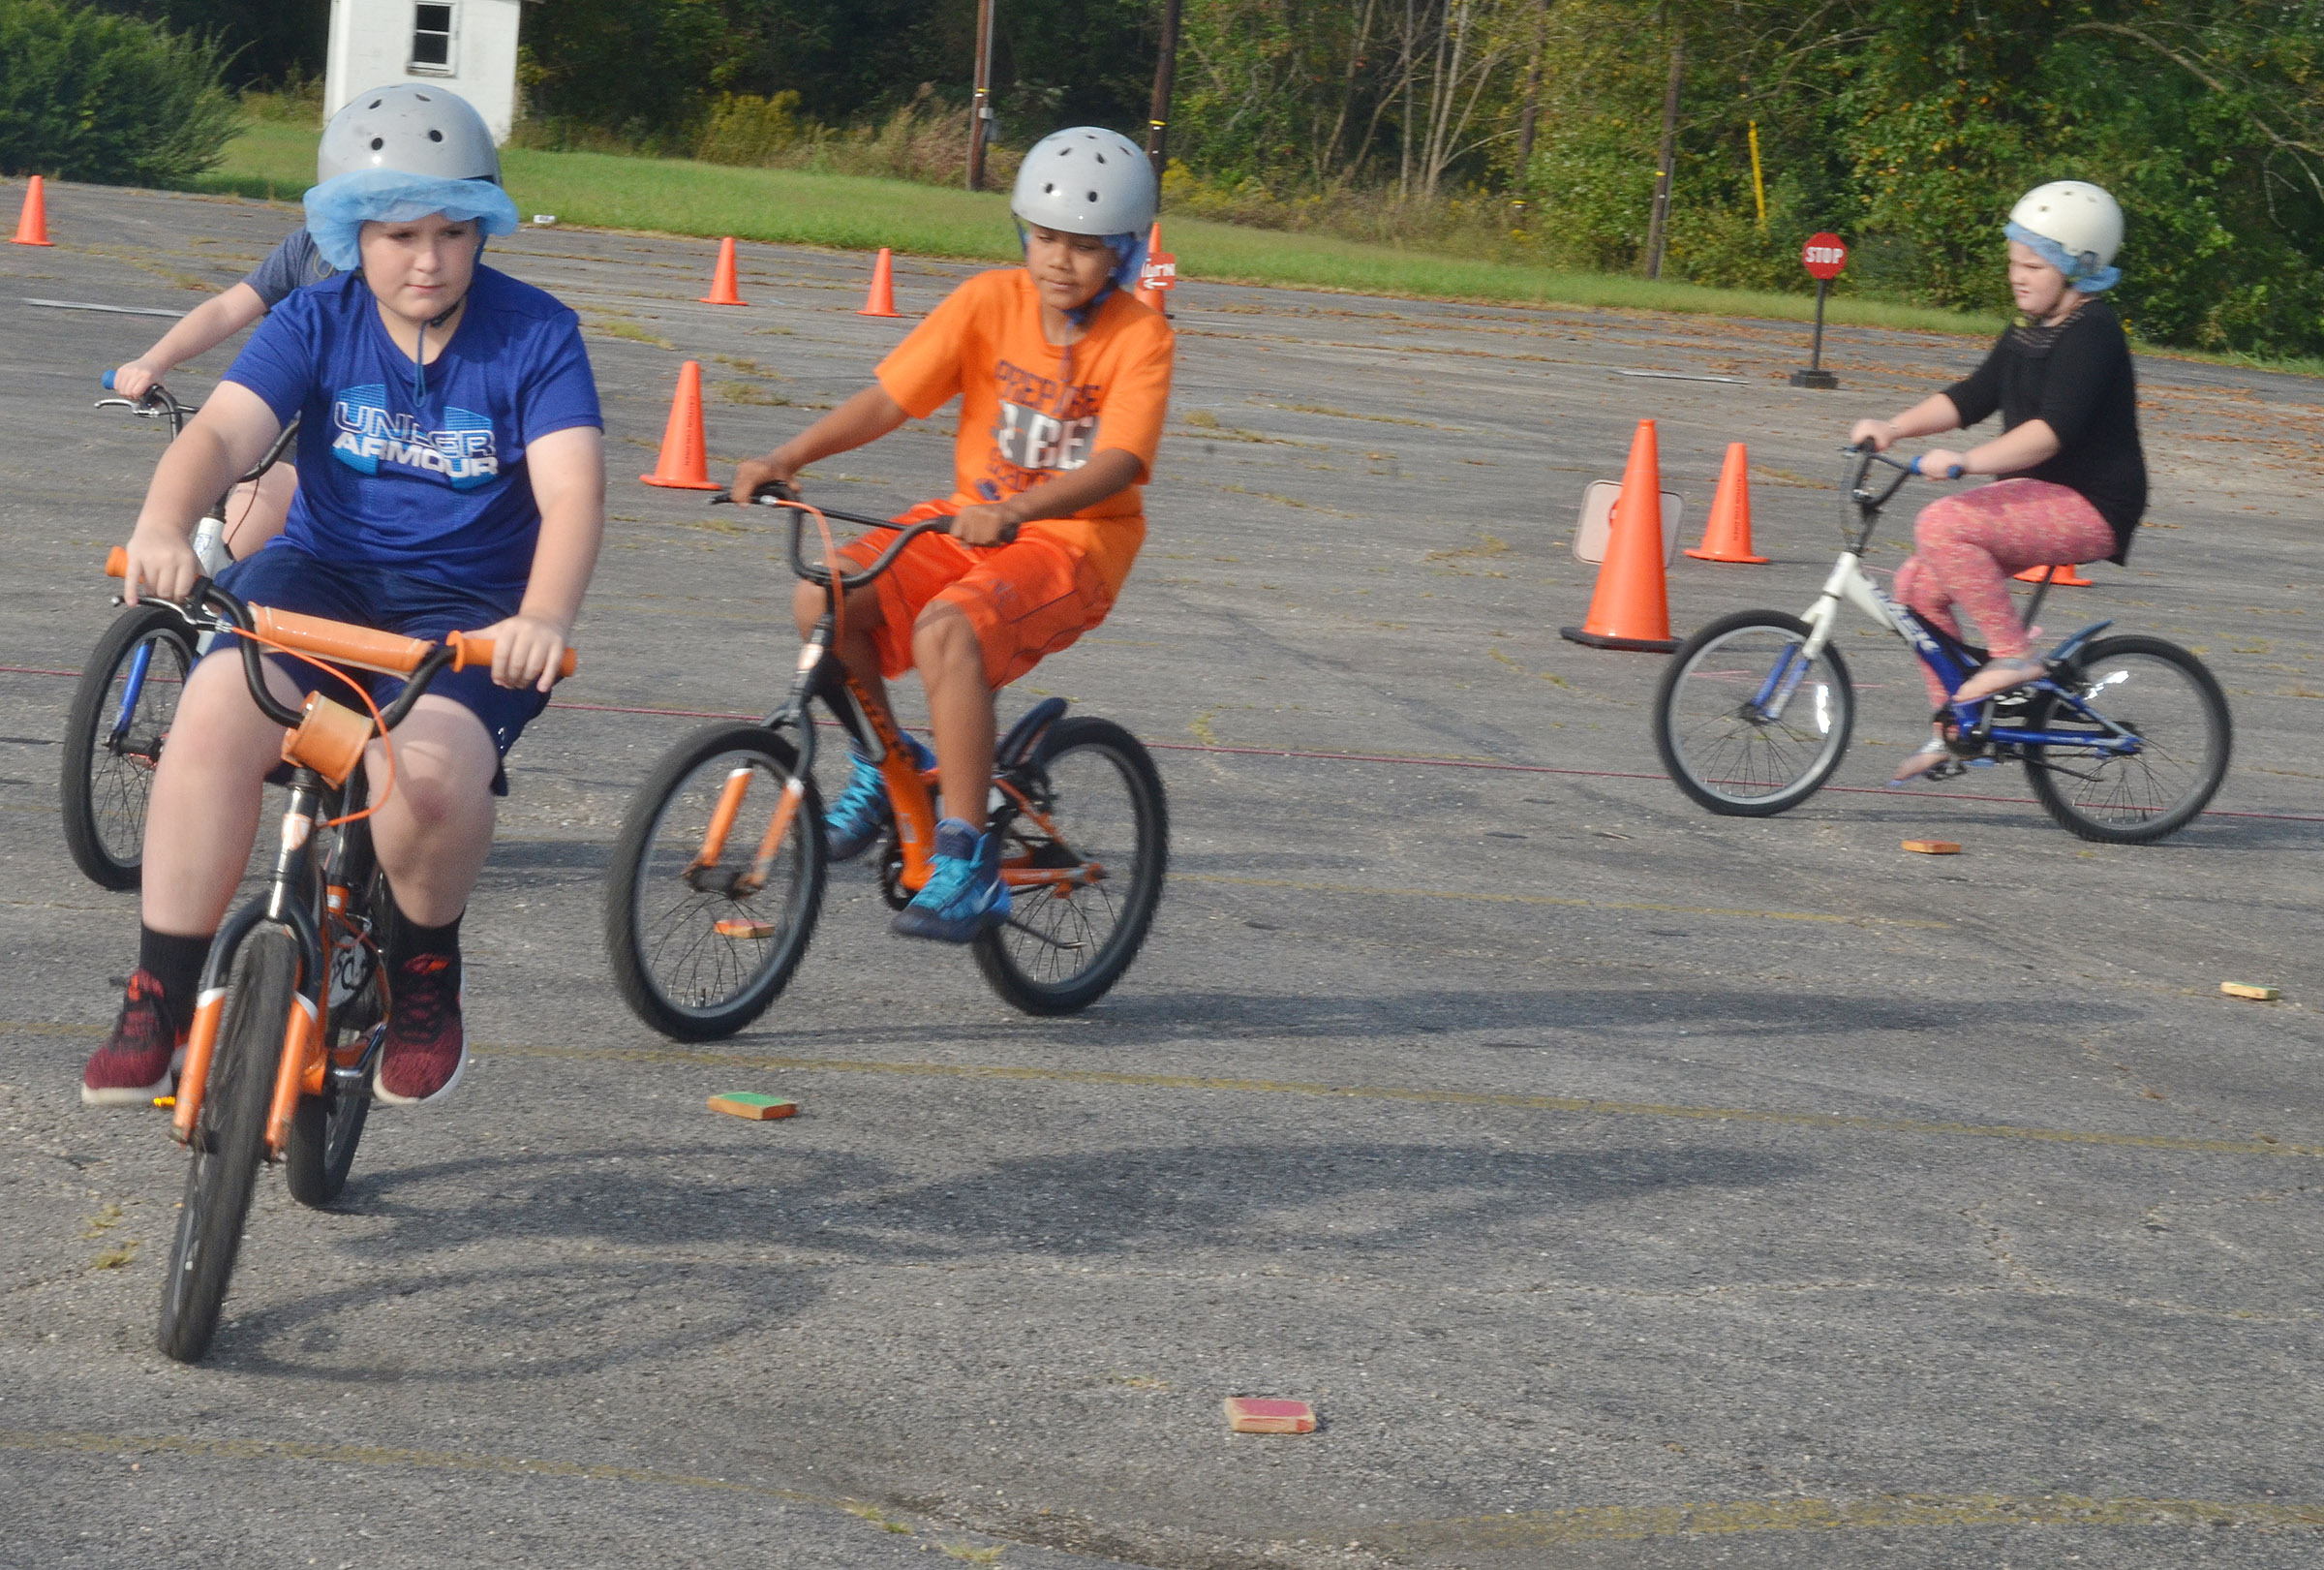 CES fourth-grader Ethan Garrison leads his classmates while driving in a circle and obeying bicycle rules.